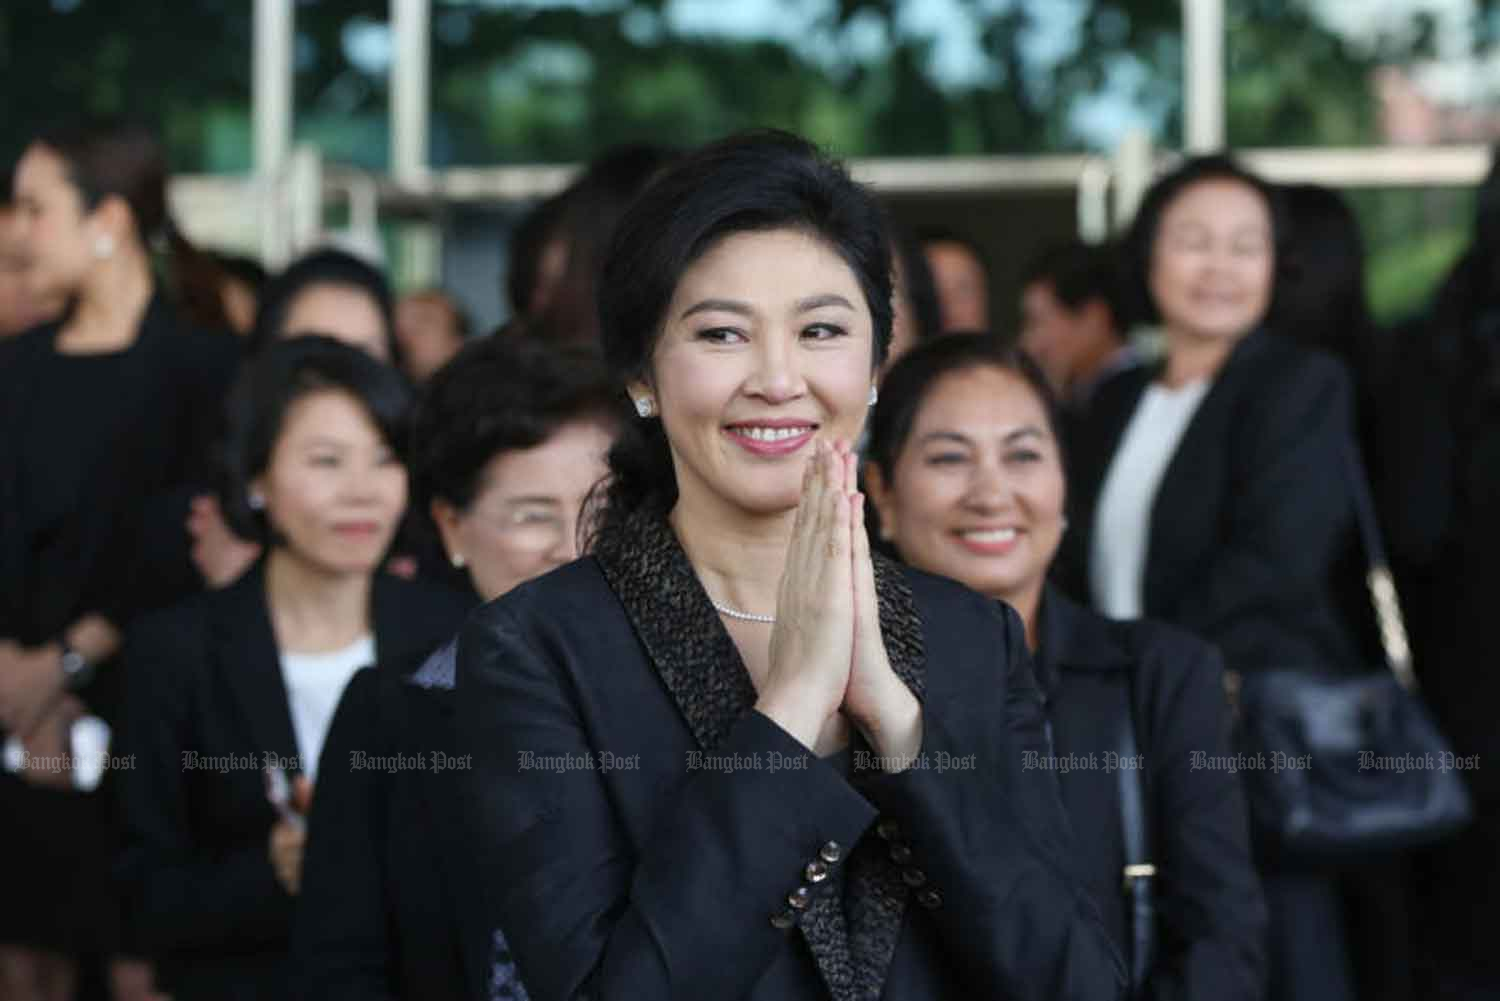 Former prime minister Yingluck Shinawatra outside the Supreme Court's Criminal Division for Holders of Political Positions in Bangkok during her trial for dereliction of duty  in 2017, shortly before she fled from Thailand. (Photo: Seksan Rojanamethakul)